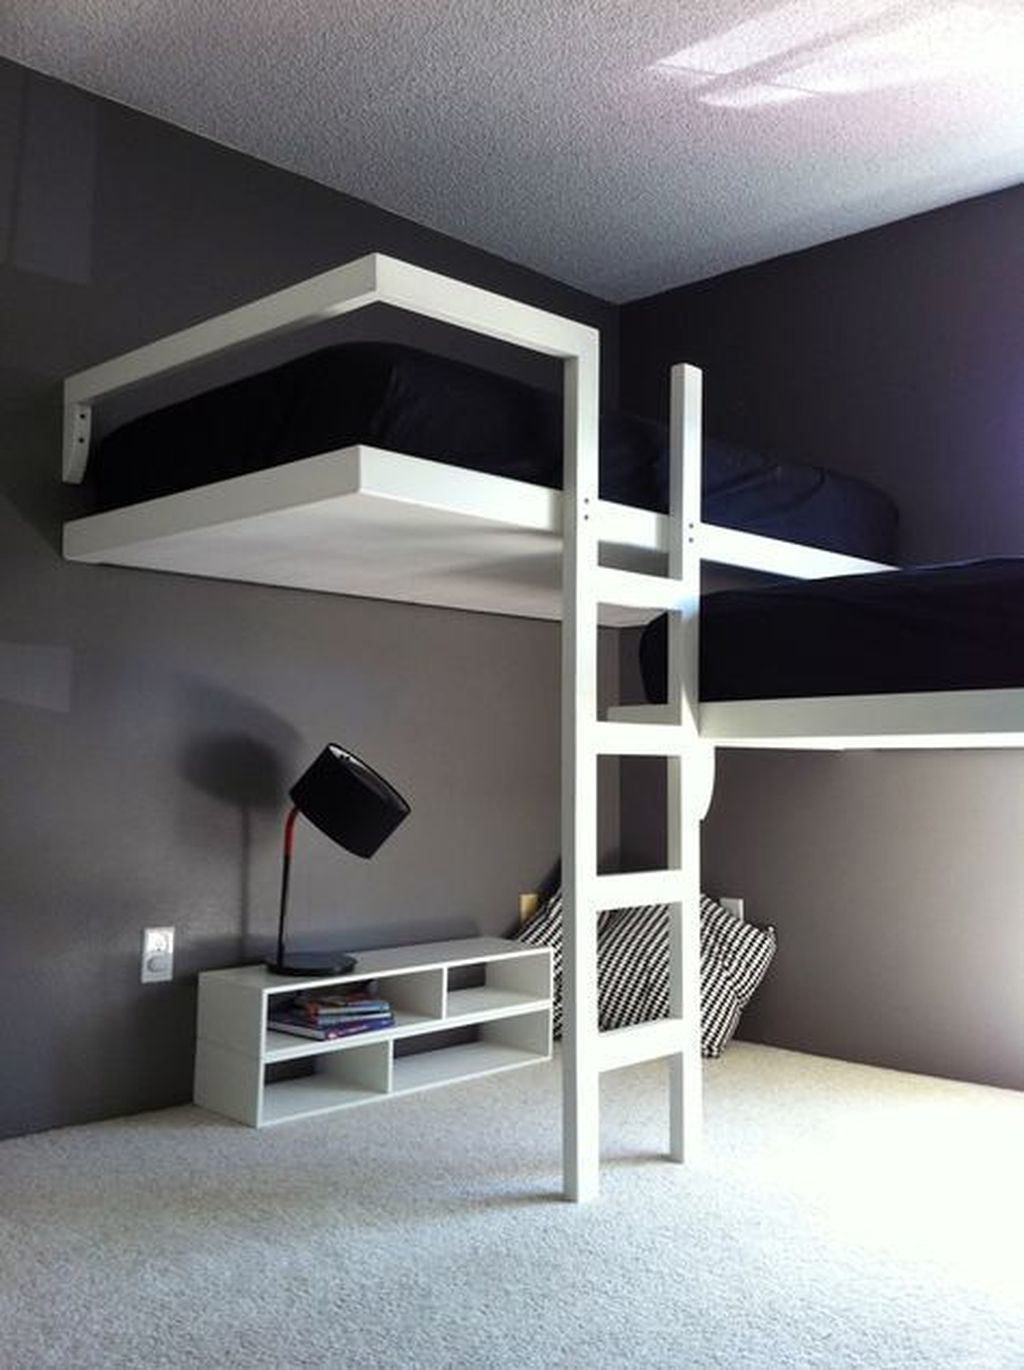 Fascinating Bunk Beds Design Ideas For Small Room 03